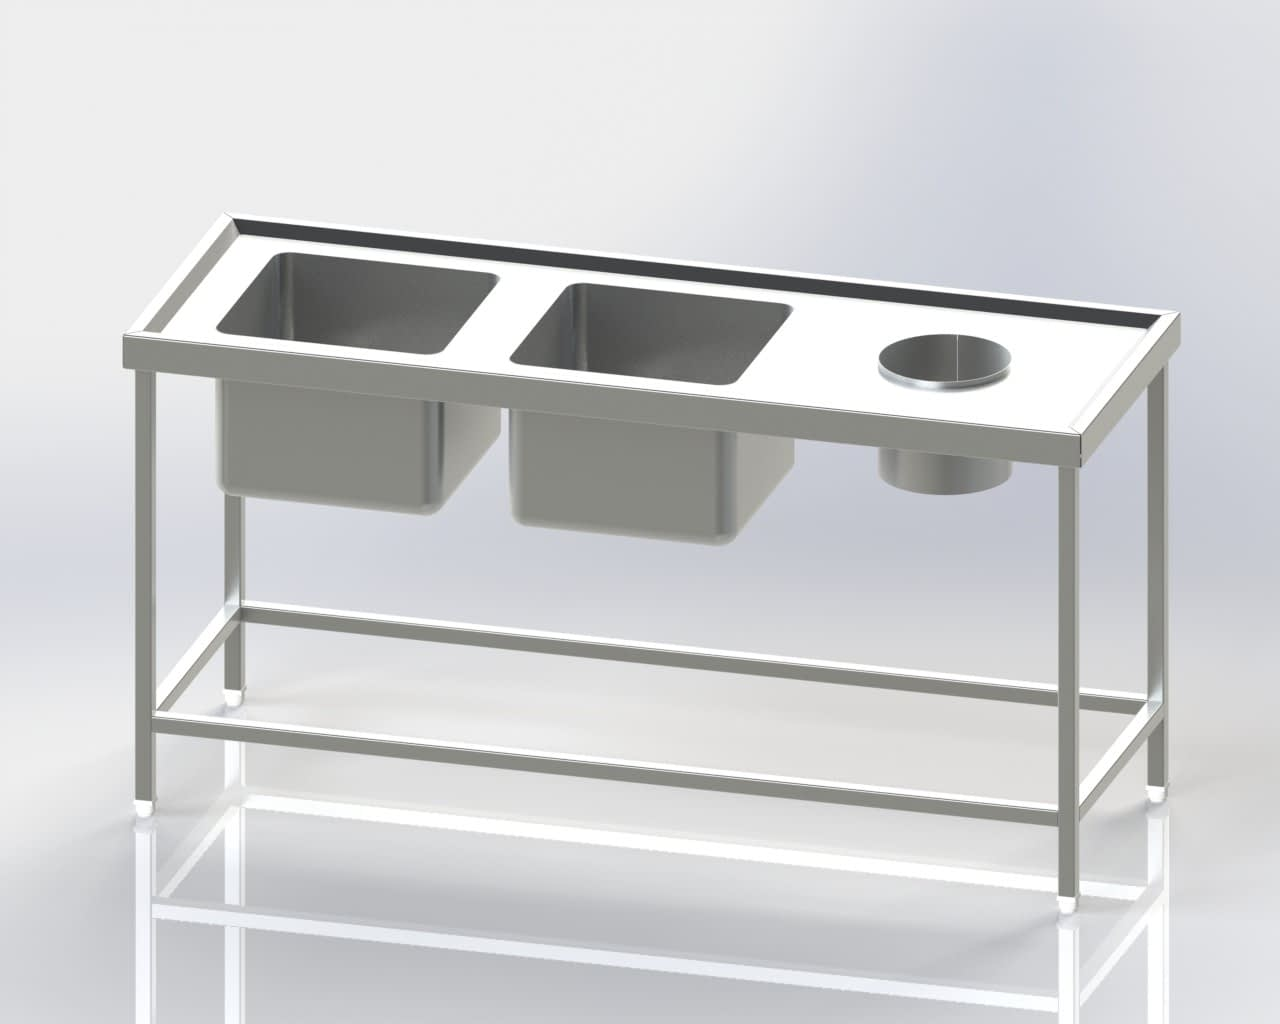 Two Sink Dish Wash Unit-Scrapping Hole